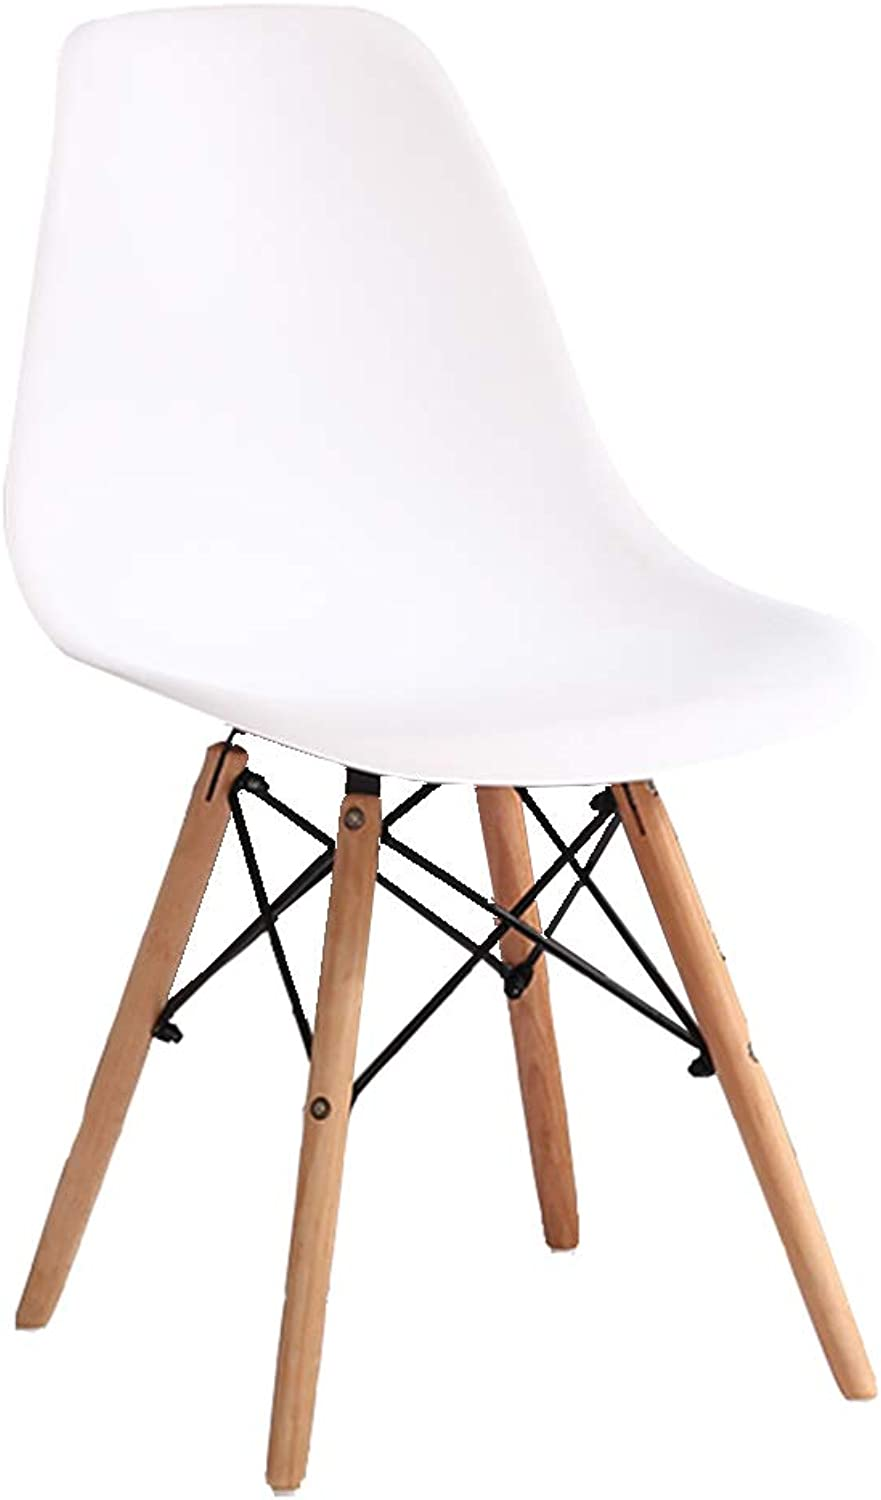 CAIJUN Chair Multipurpose Assembly Solid Plastic Seat Solid Wood Stool Legs Non-Slip Modern Simple Fashion (color   White, Size   41x39x81cm)